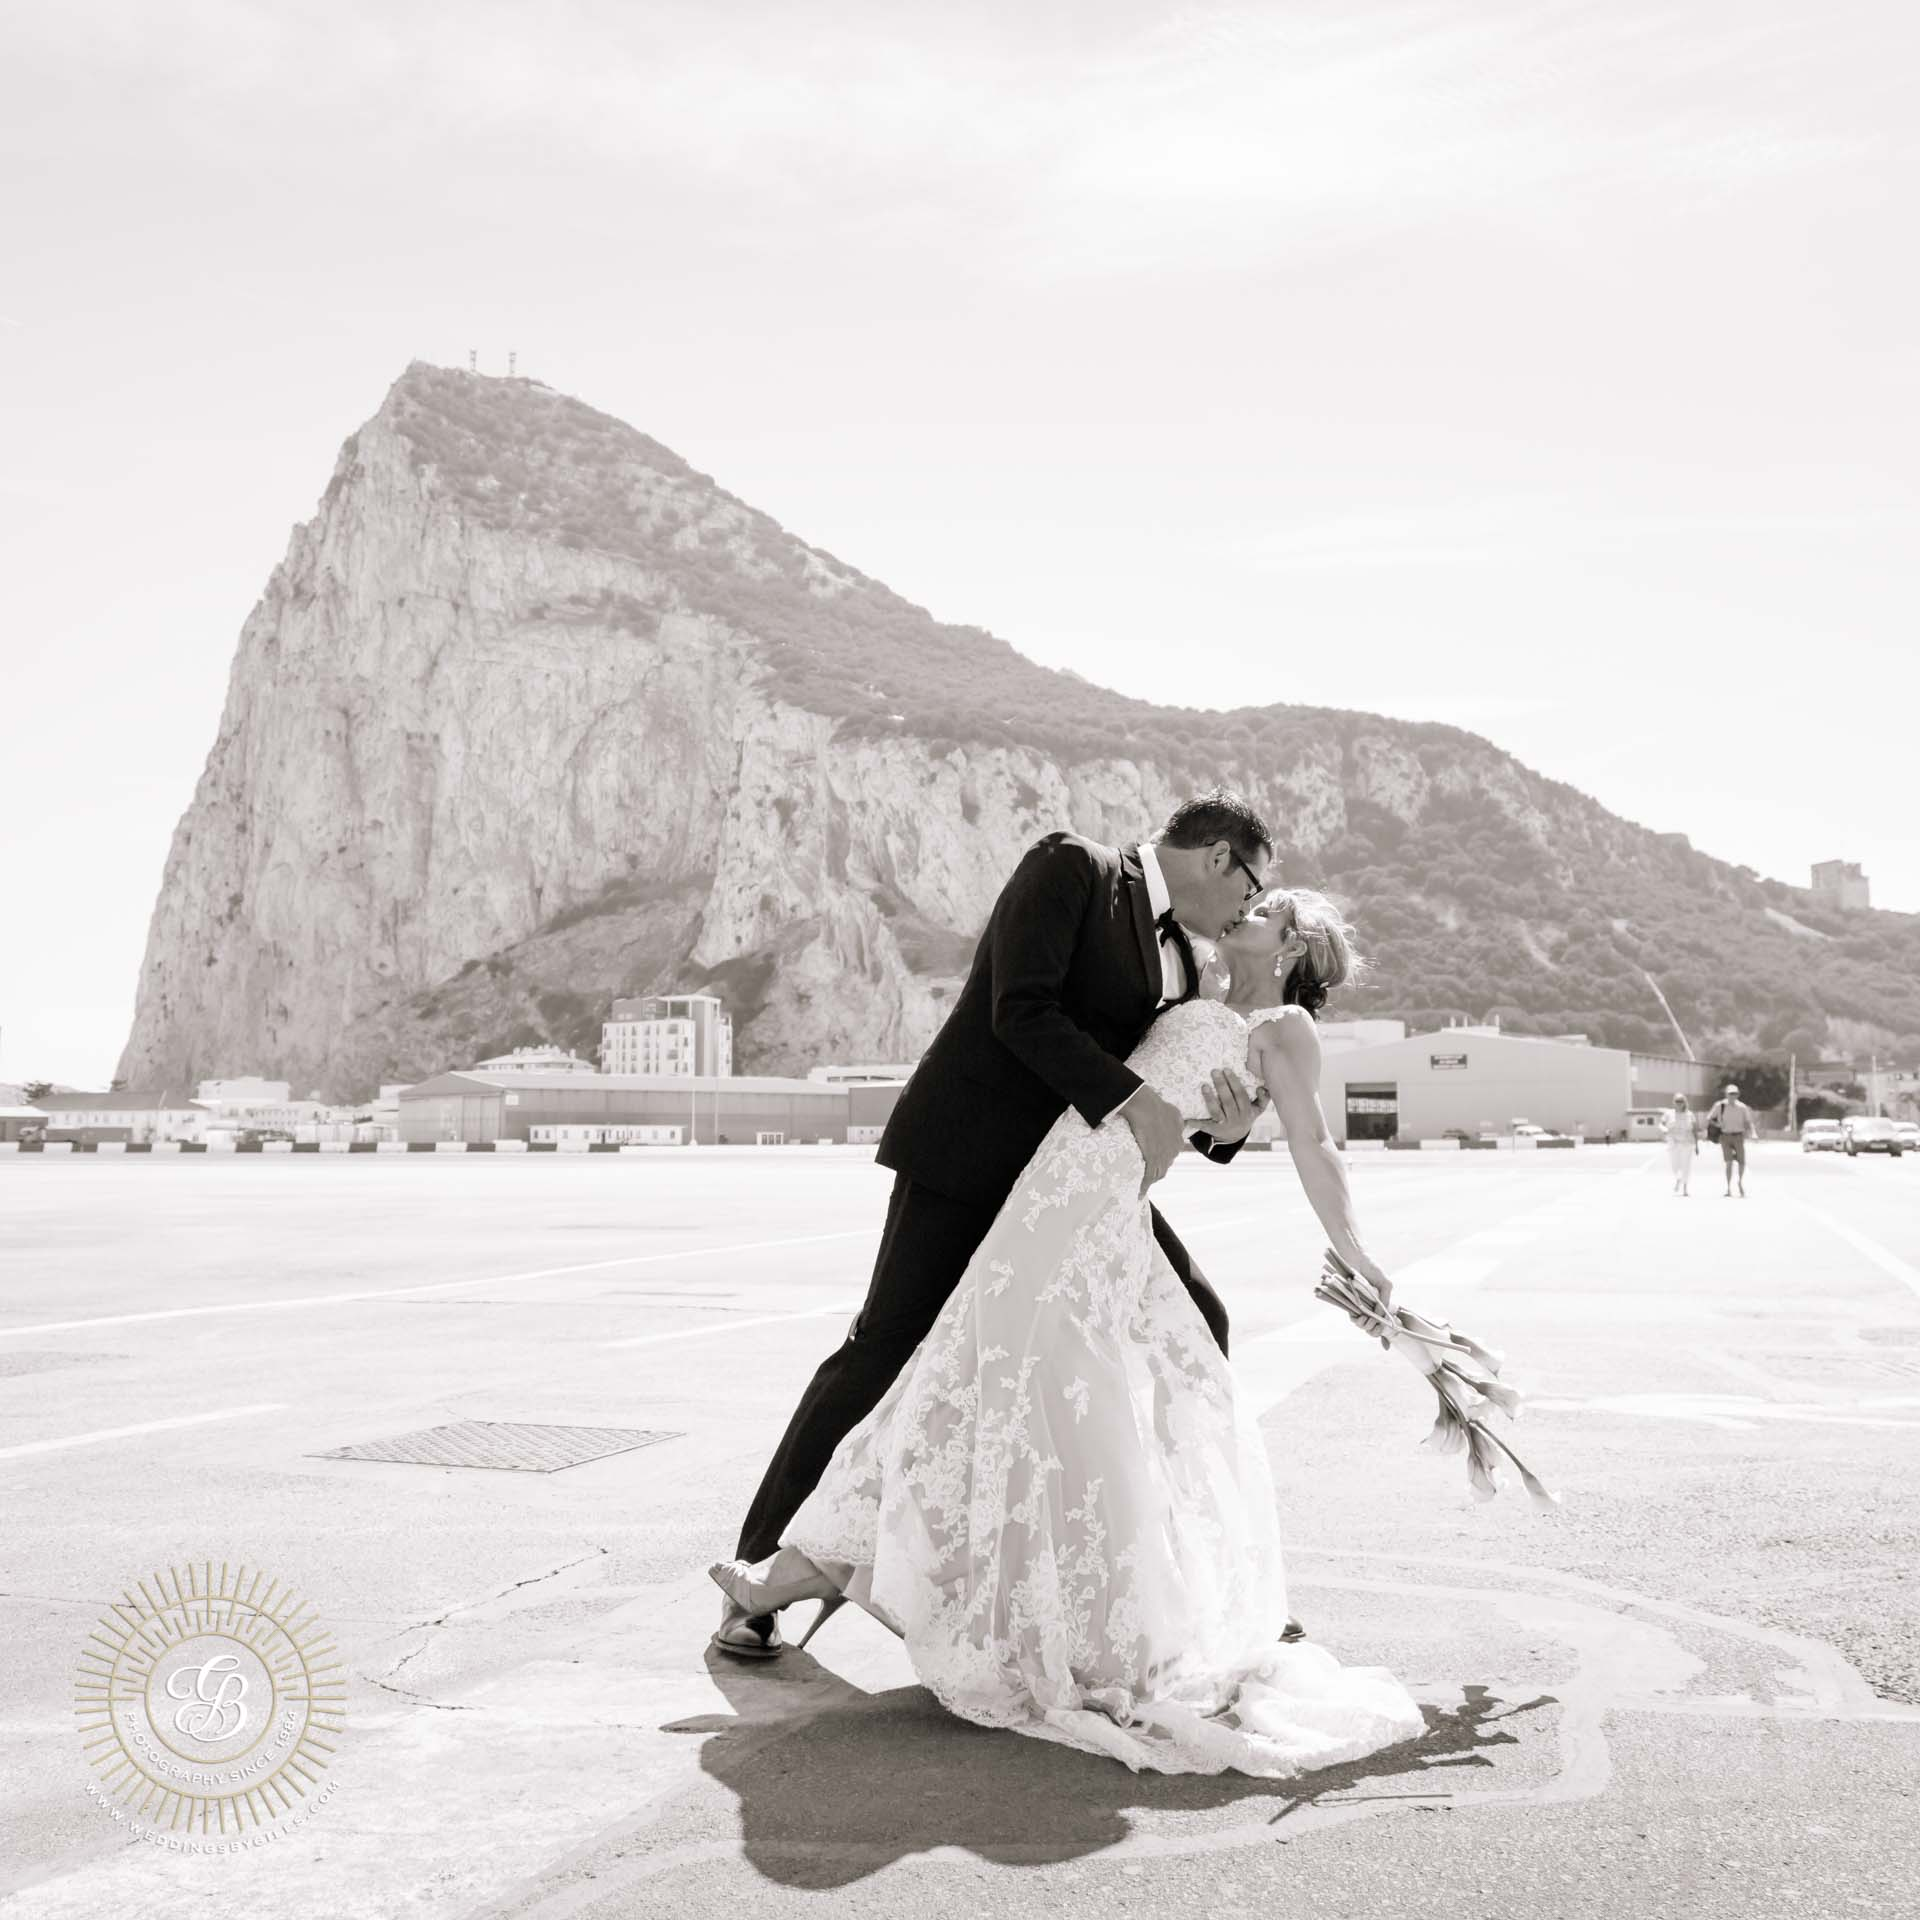 Wedding Photography At The Site Of John Lennon Yoko Ono S Wedd